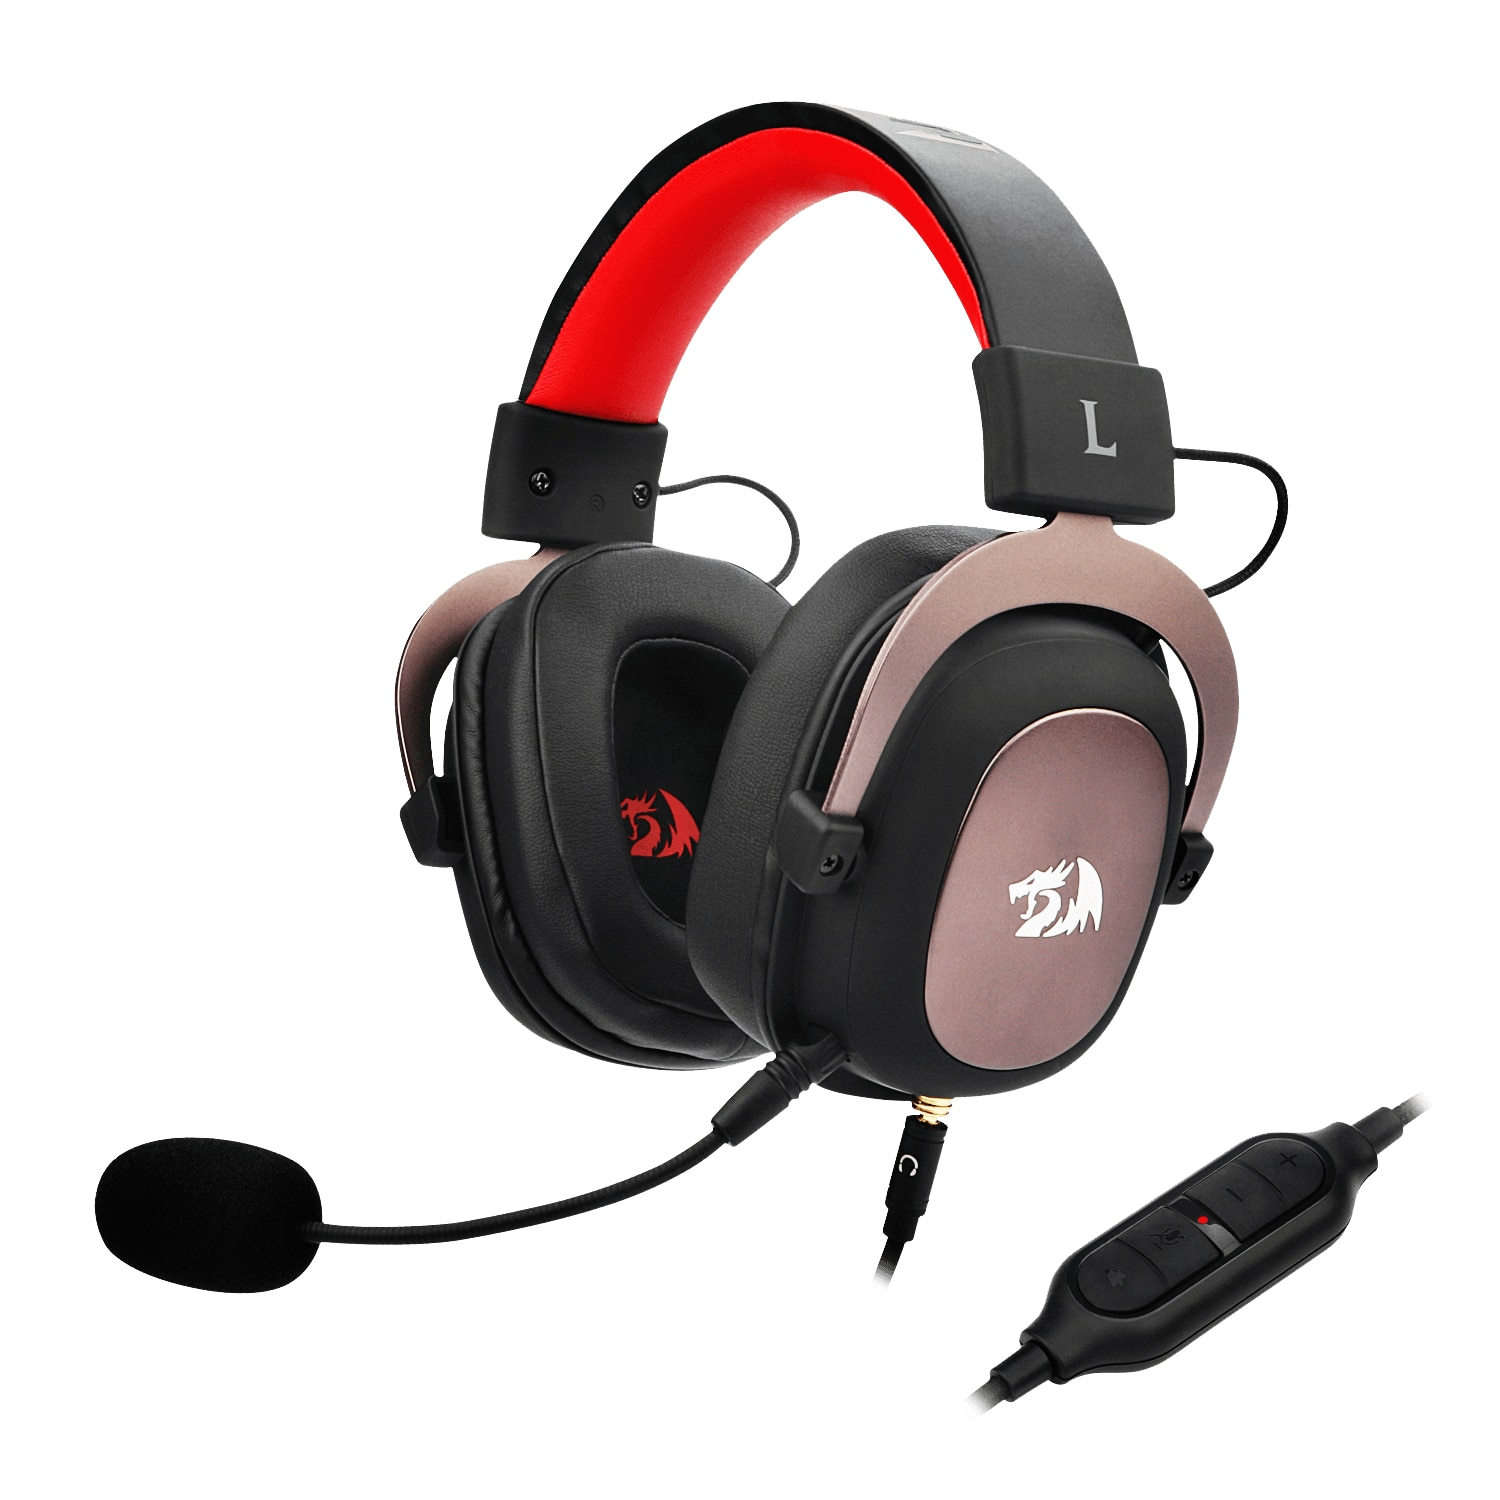 Redragon H510 Zeus Wired Gaming Headset 7.1 Surround Sound Multi Platforms Headphone Works PC Phone PS5/4/3 Xbox One/Series X NS